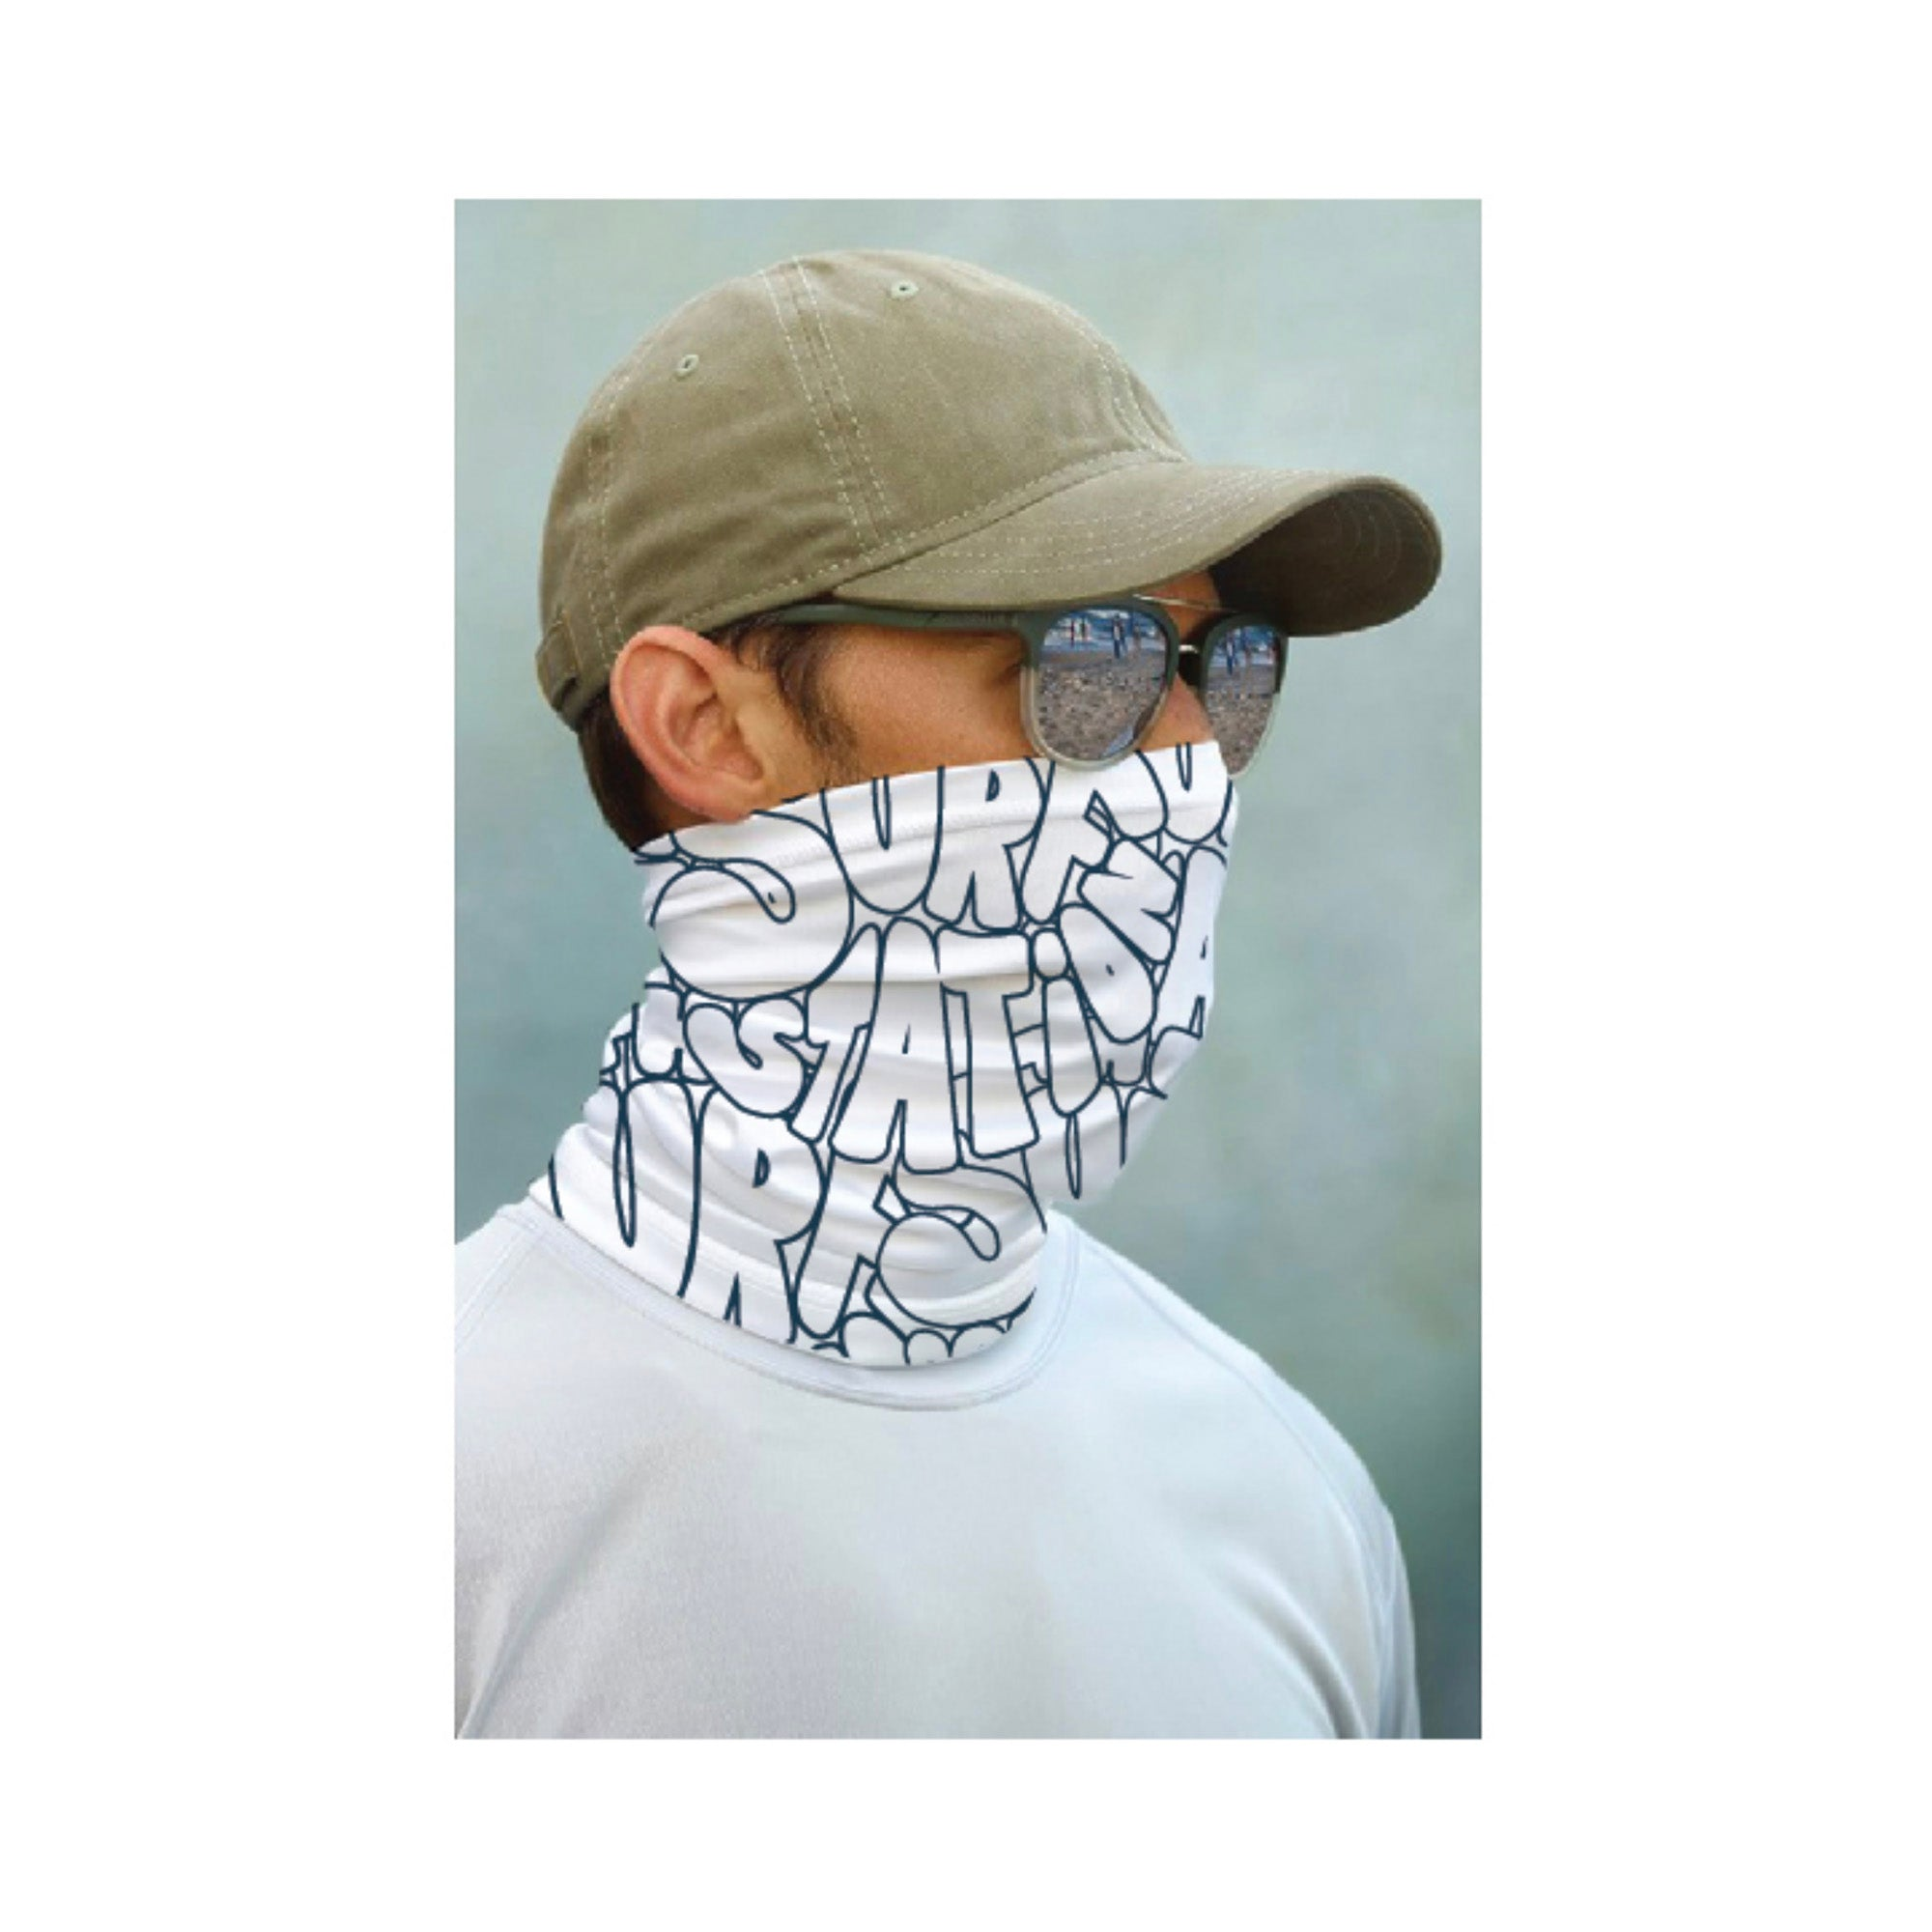 Surf Station Face Guard - Navy/White